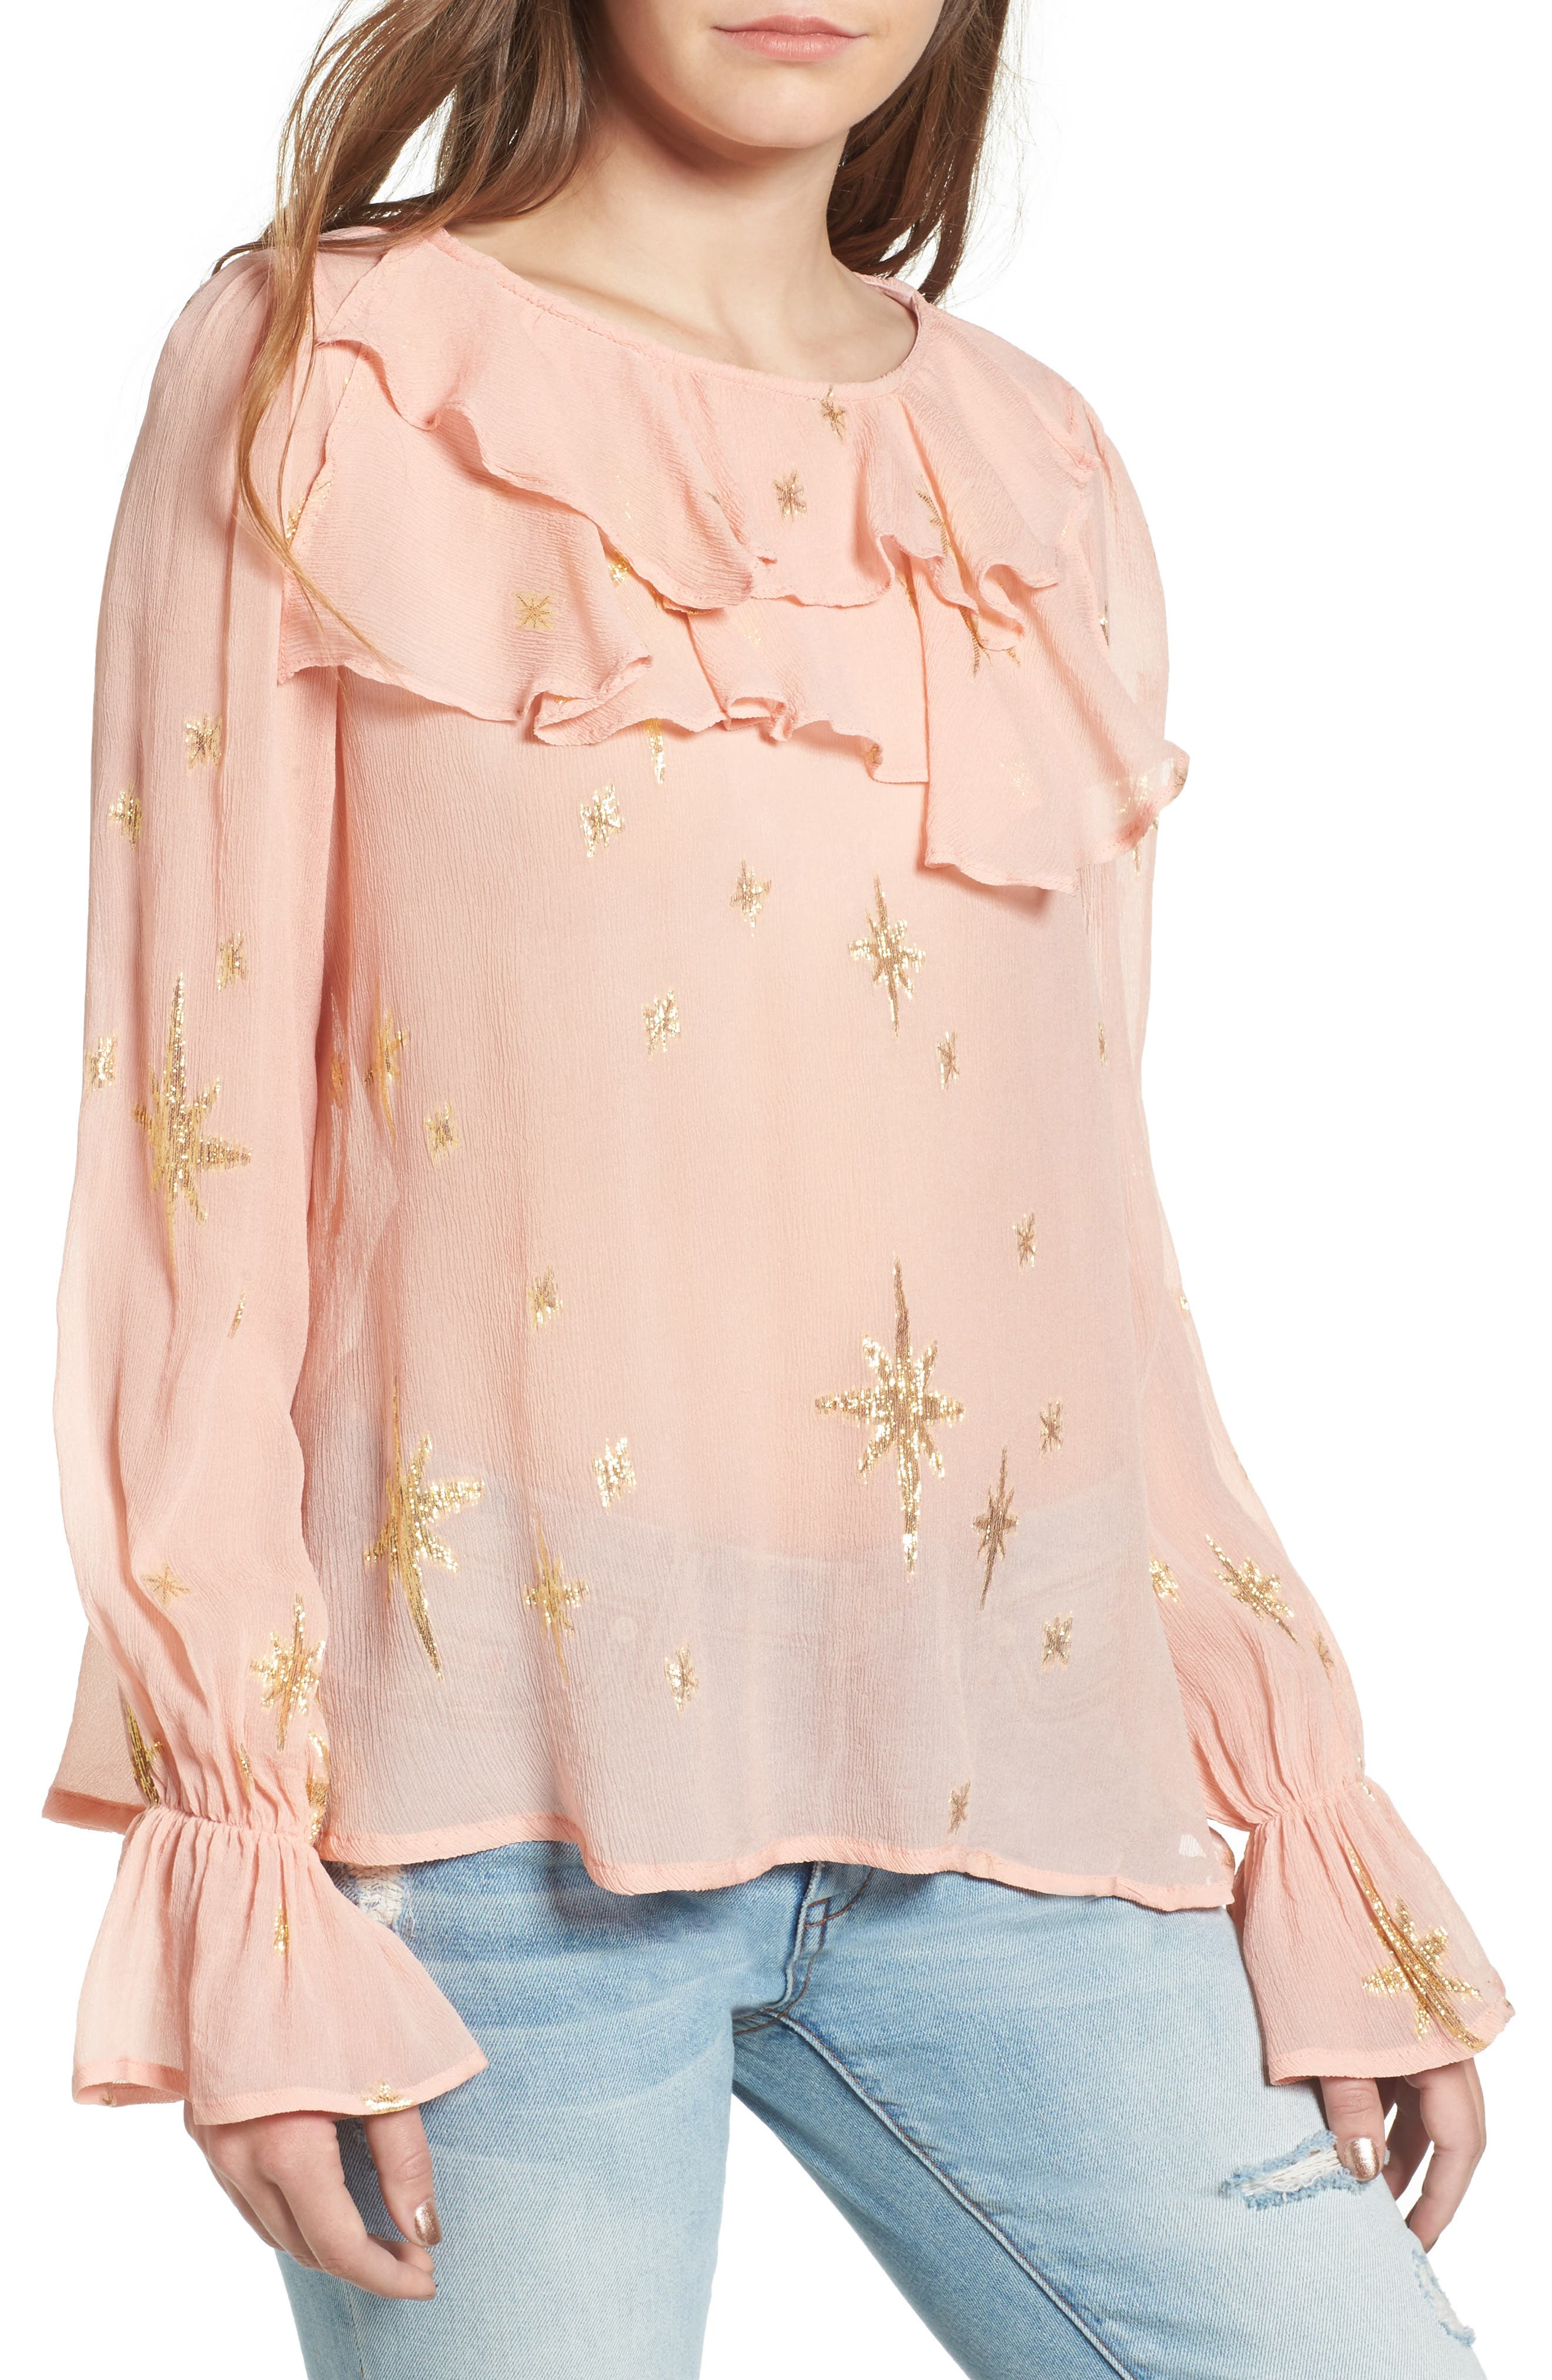 Gilded Star Blouse,                         Main,                         color, 650